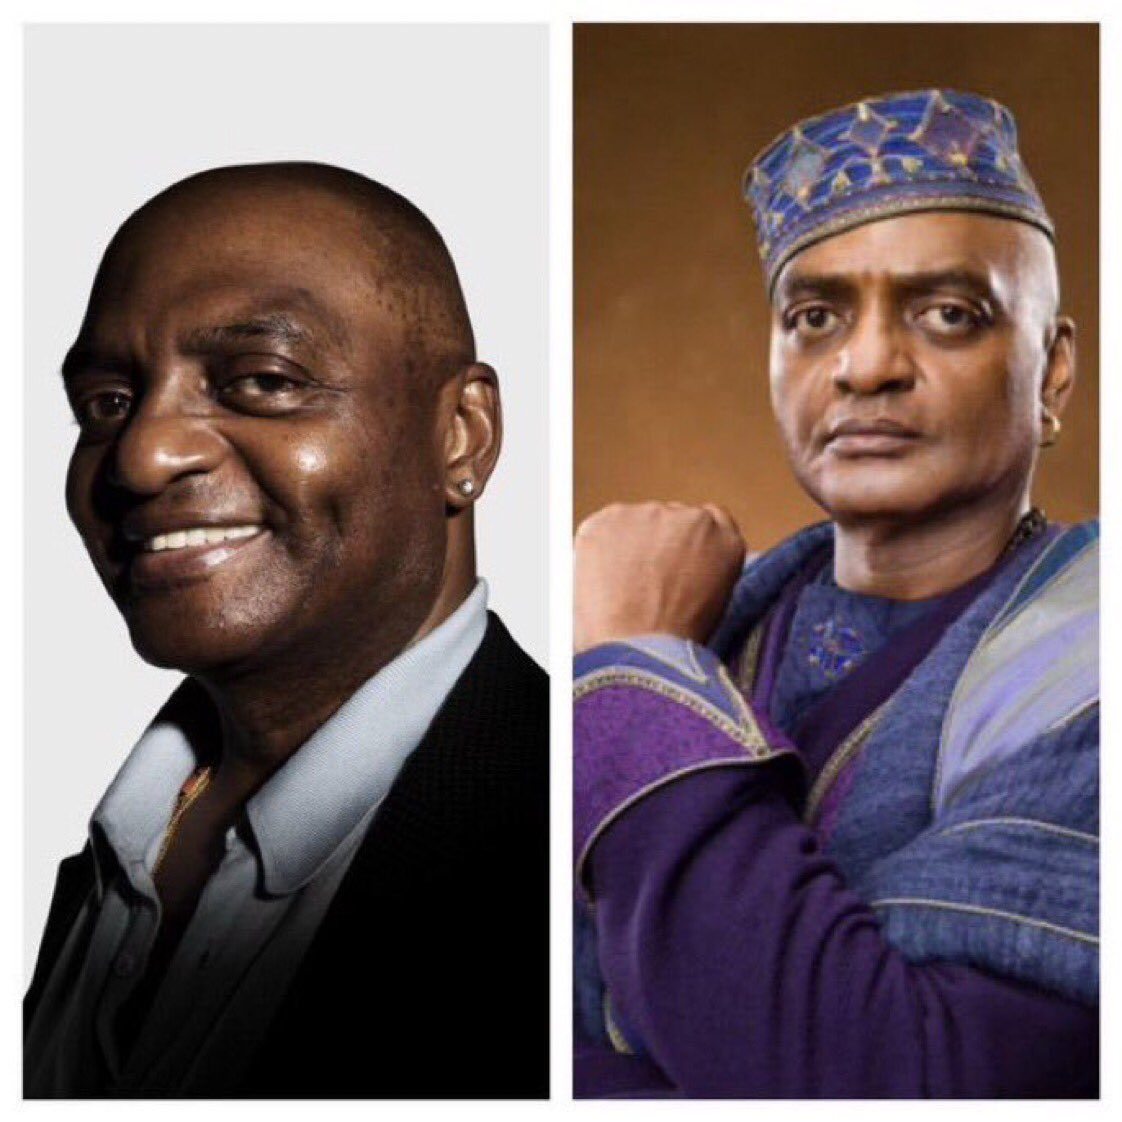 October 20: Happy Birthday, George Harris! He played Kingsley Shacklebolt in the films.